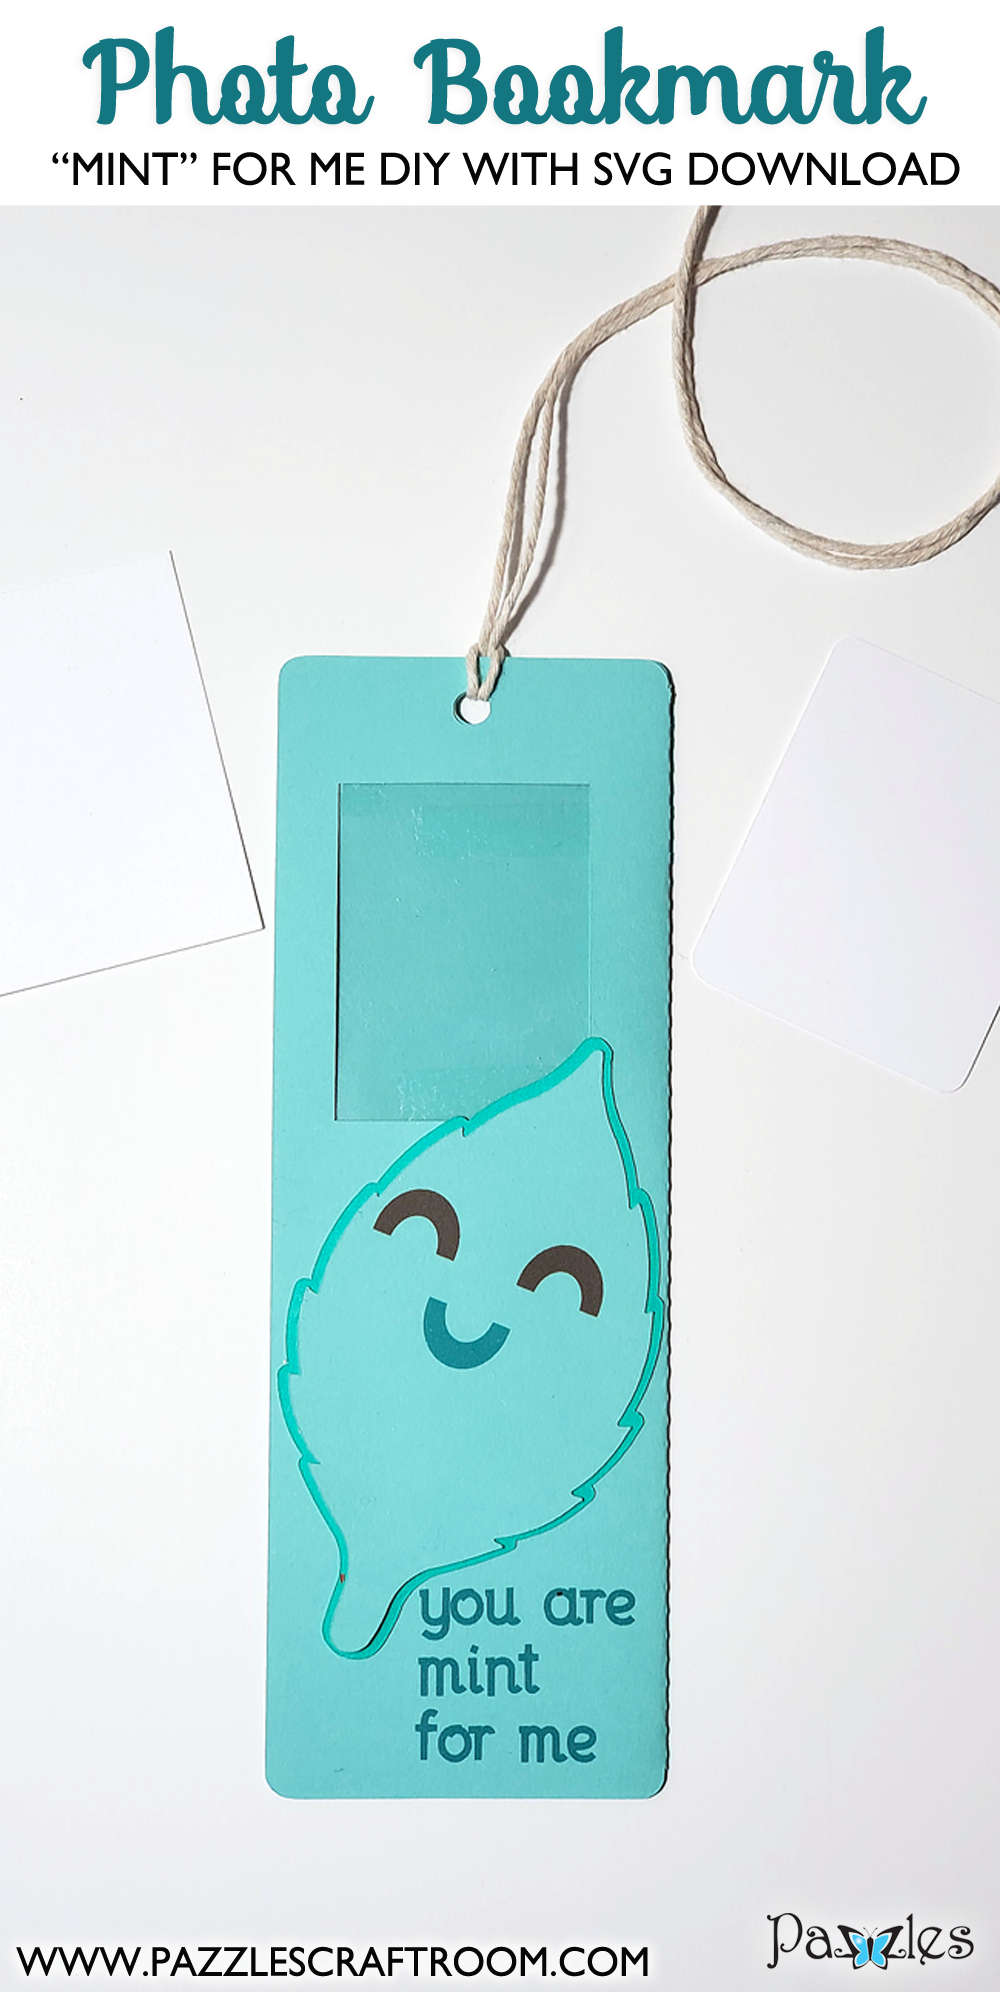 Pazzles DIY Mint for Me Photo Bookmark with instant SVG download. Instant SVG download compatible with all major electronic cutters including Pazzles Inspiration, Cricut, and Silhouette Cameo. Design by Renee Smart.